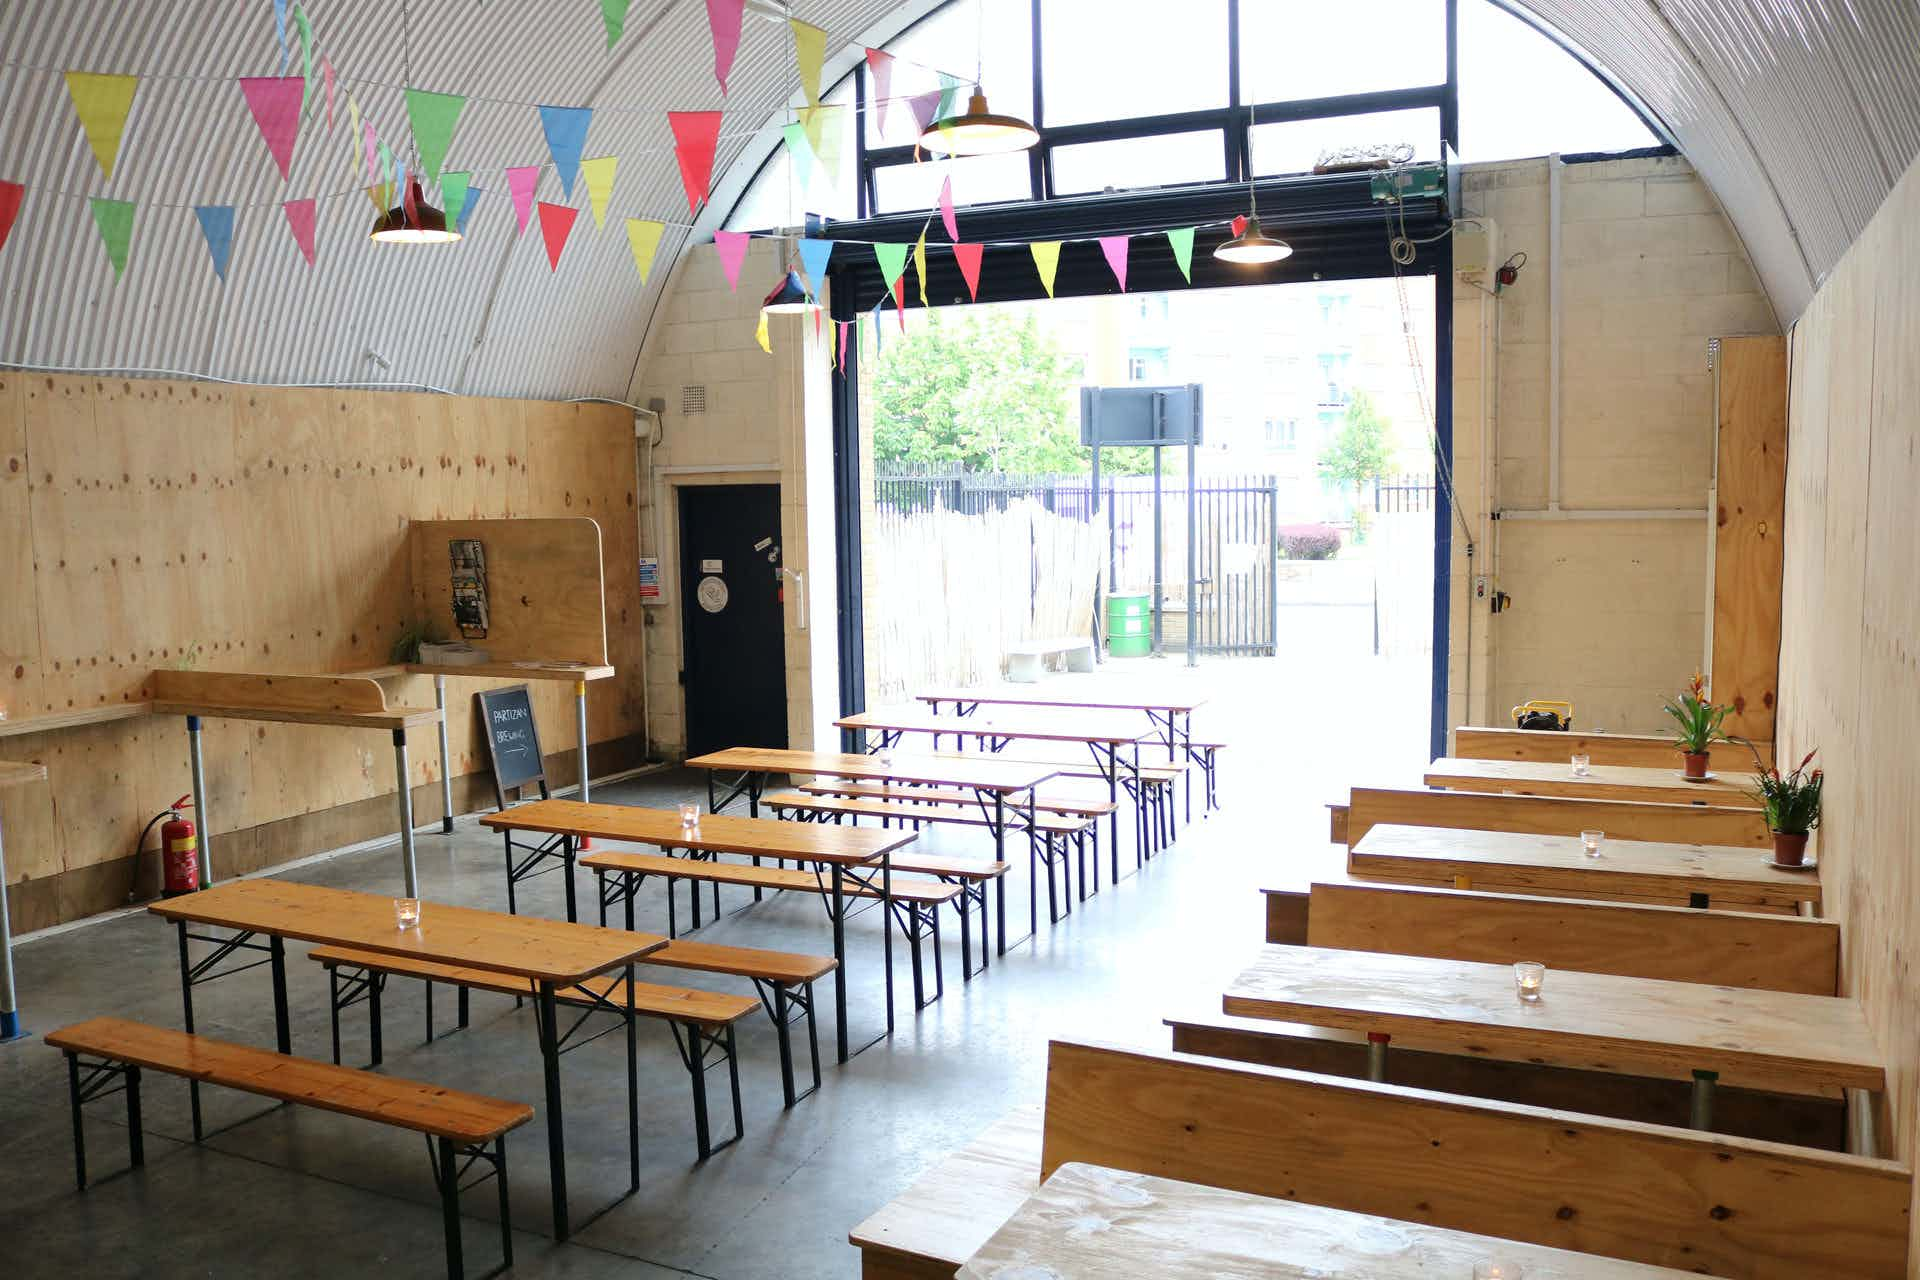 Public Space | The Brewery, Whole Venue